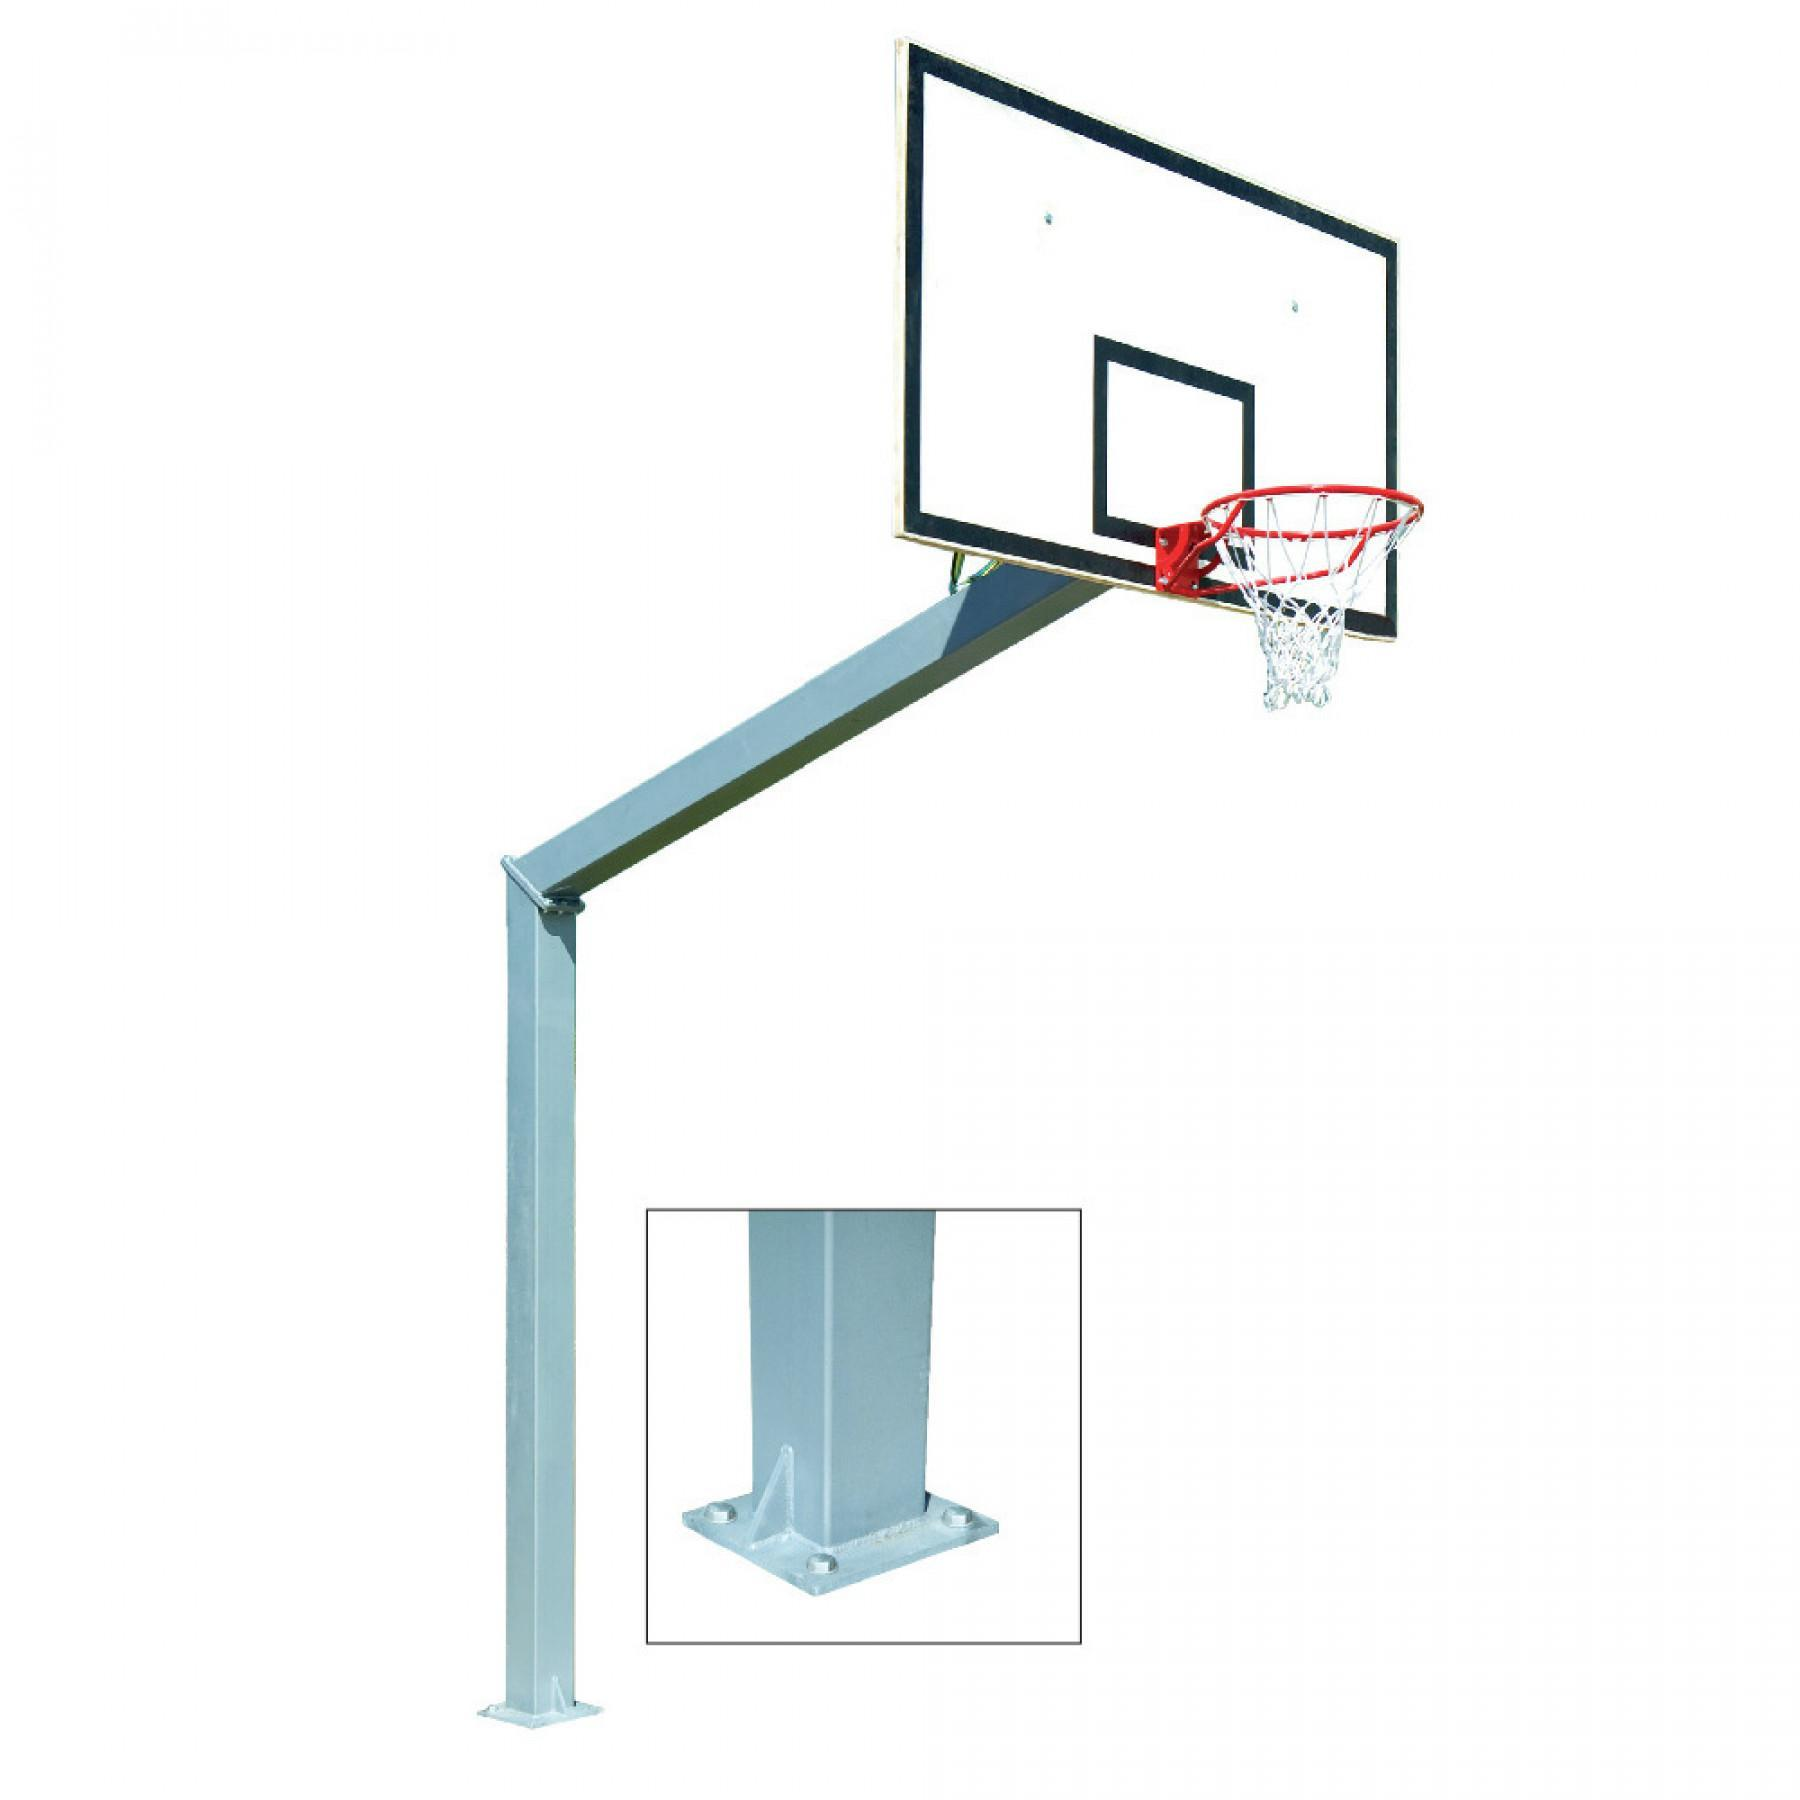 Outdoor basketball goal with 3.05m Power Shot foot